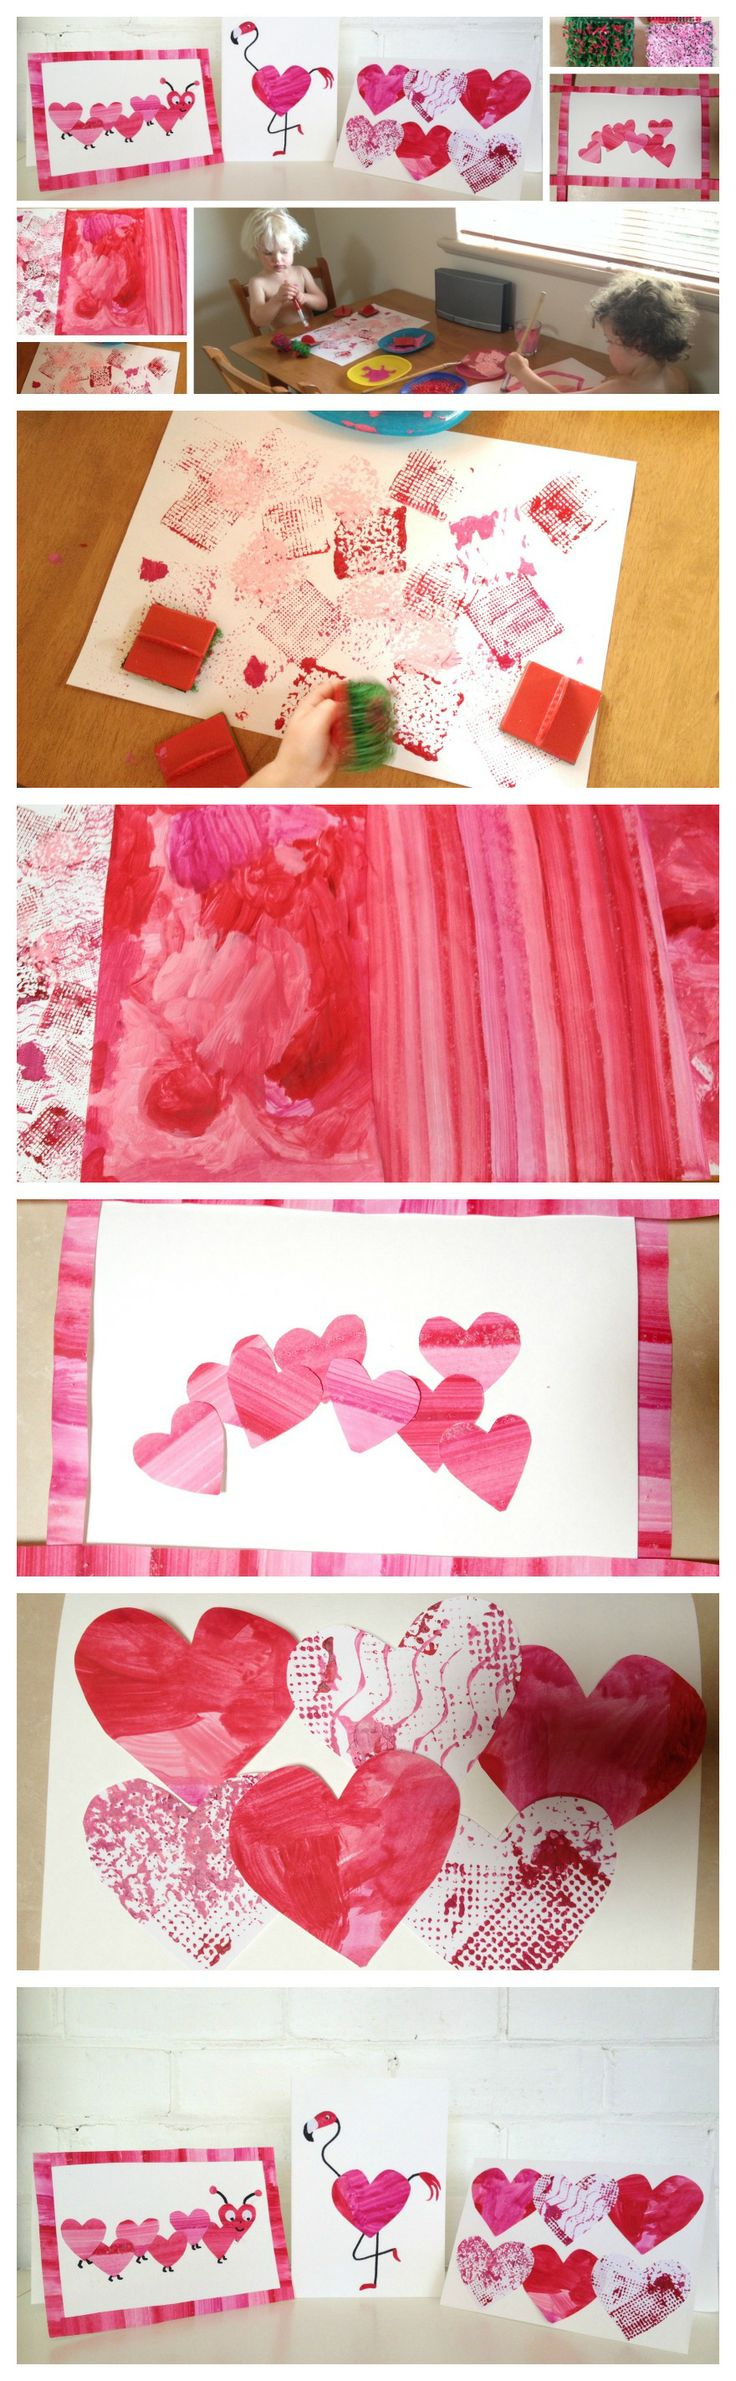 Sarah Tamblyn Designs - Valentines Day Card Craft. Fun and simple DIY Valentines Day cards. Cut up your paintings to create a card made with love!